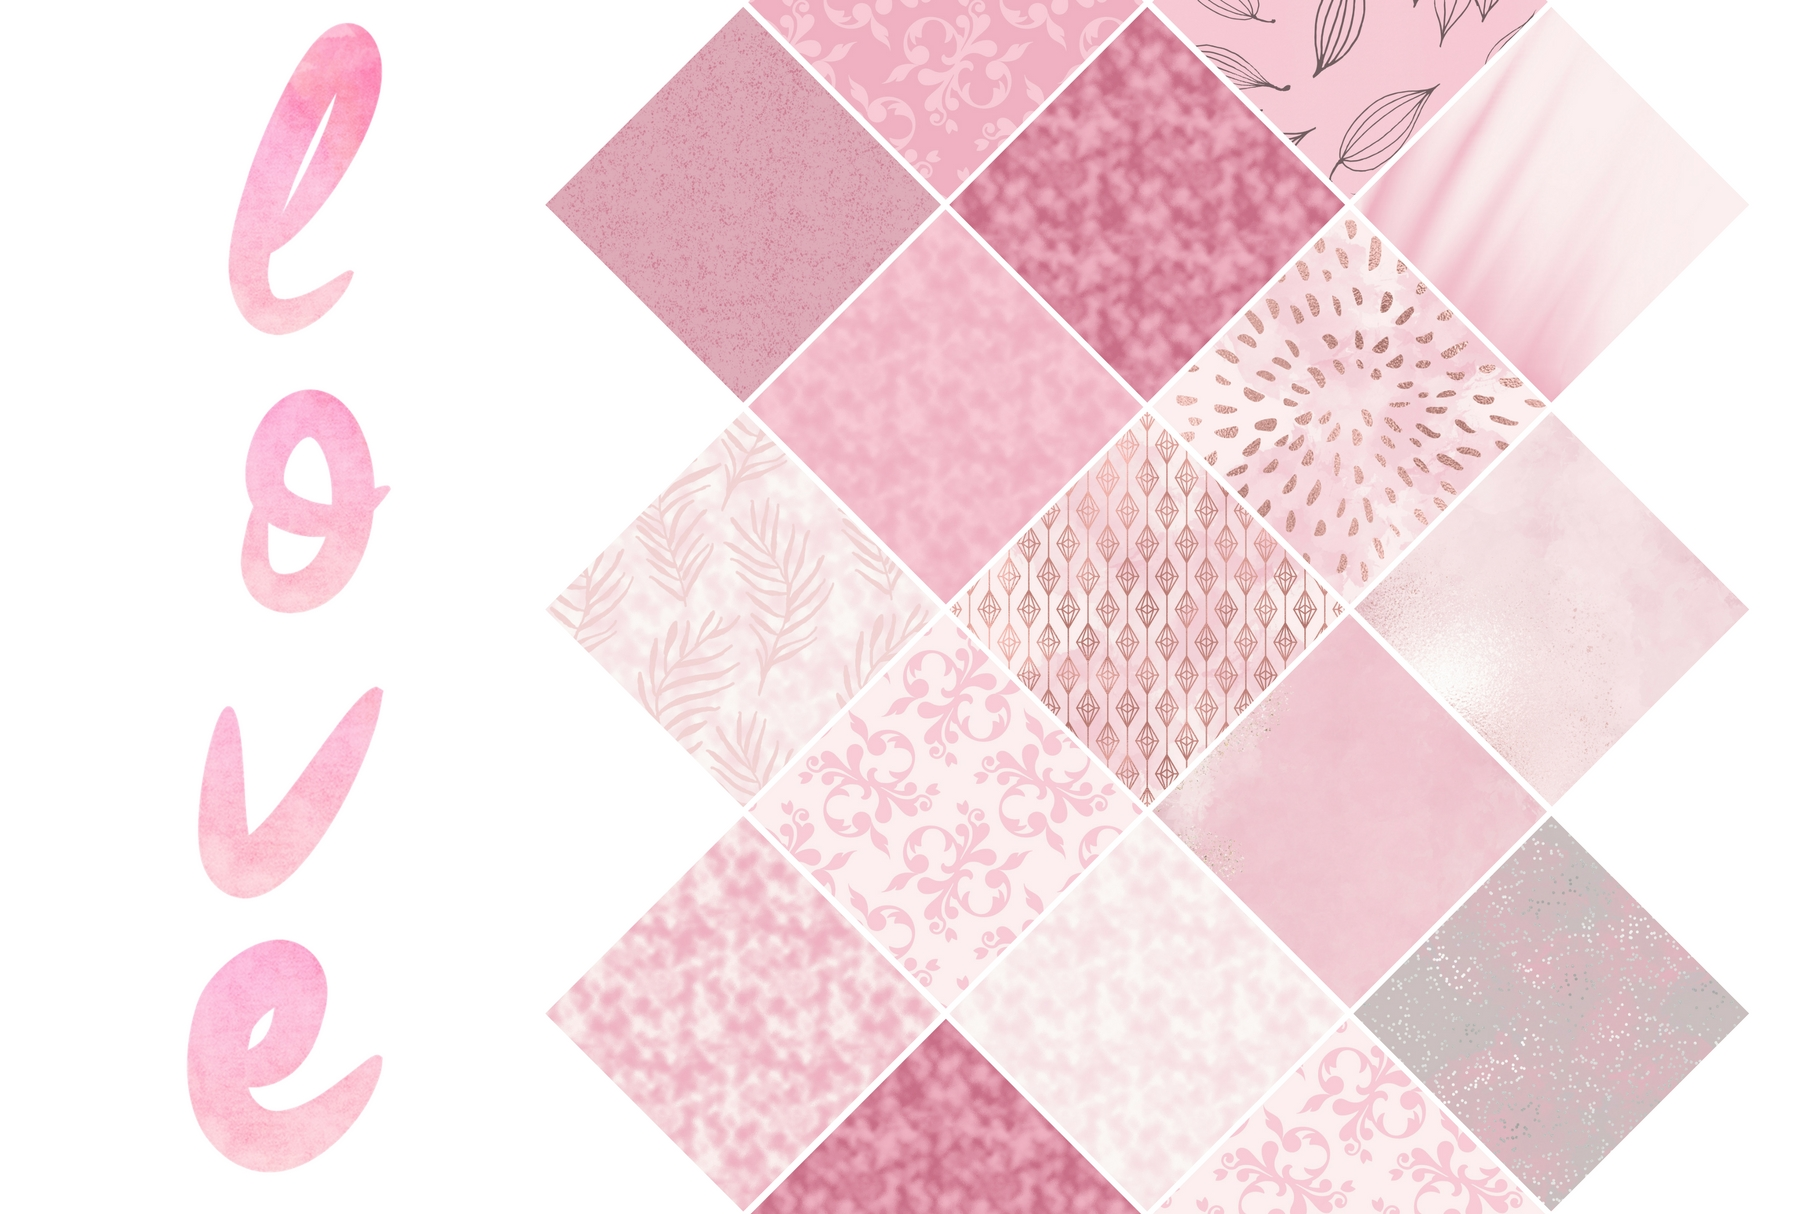 Paint and Pink Textures + Quotes Graphic Textures By Creative Stash - Image 2